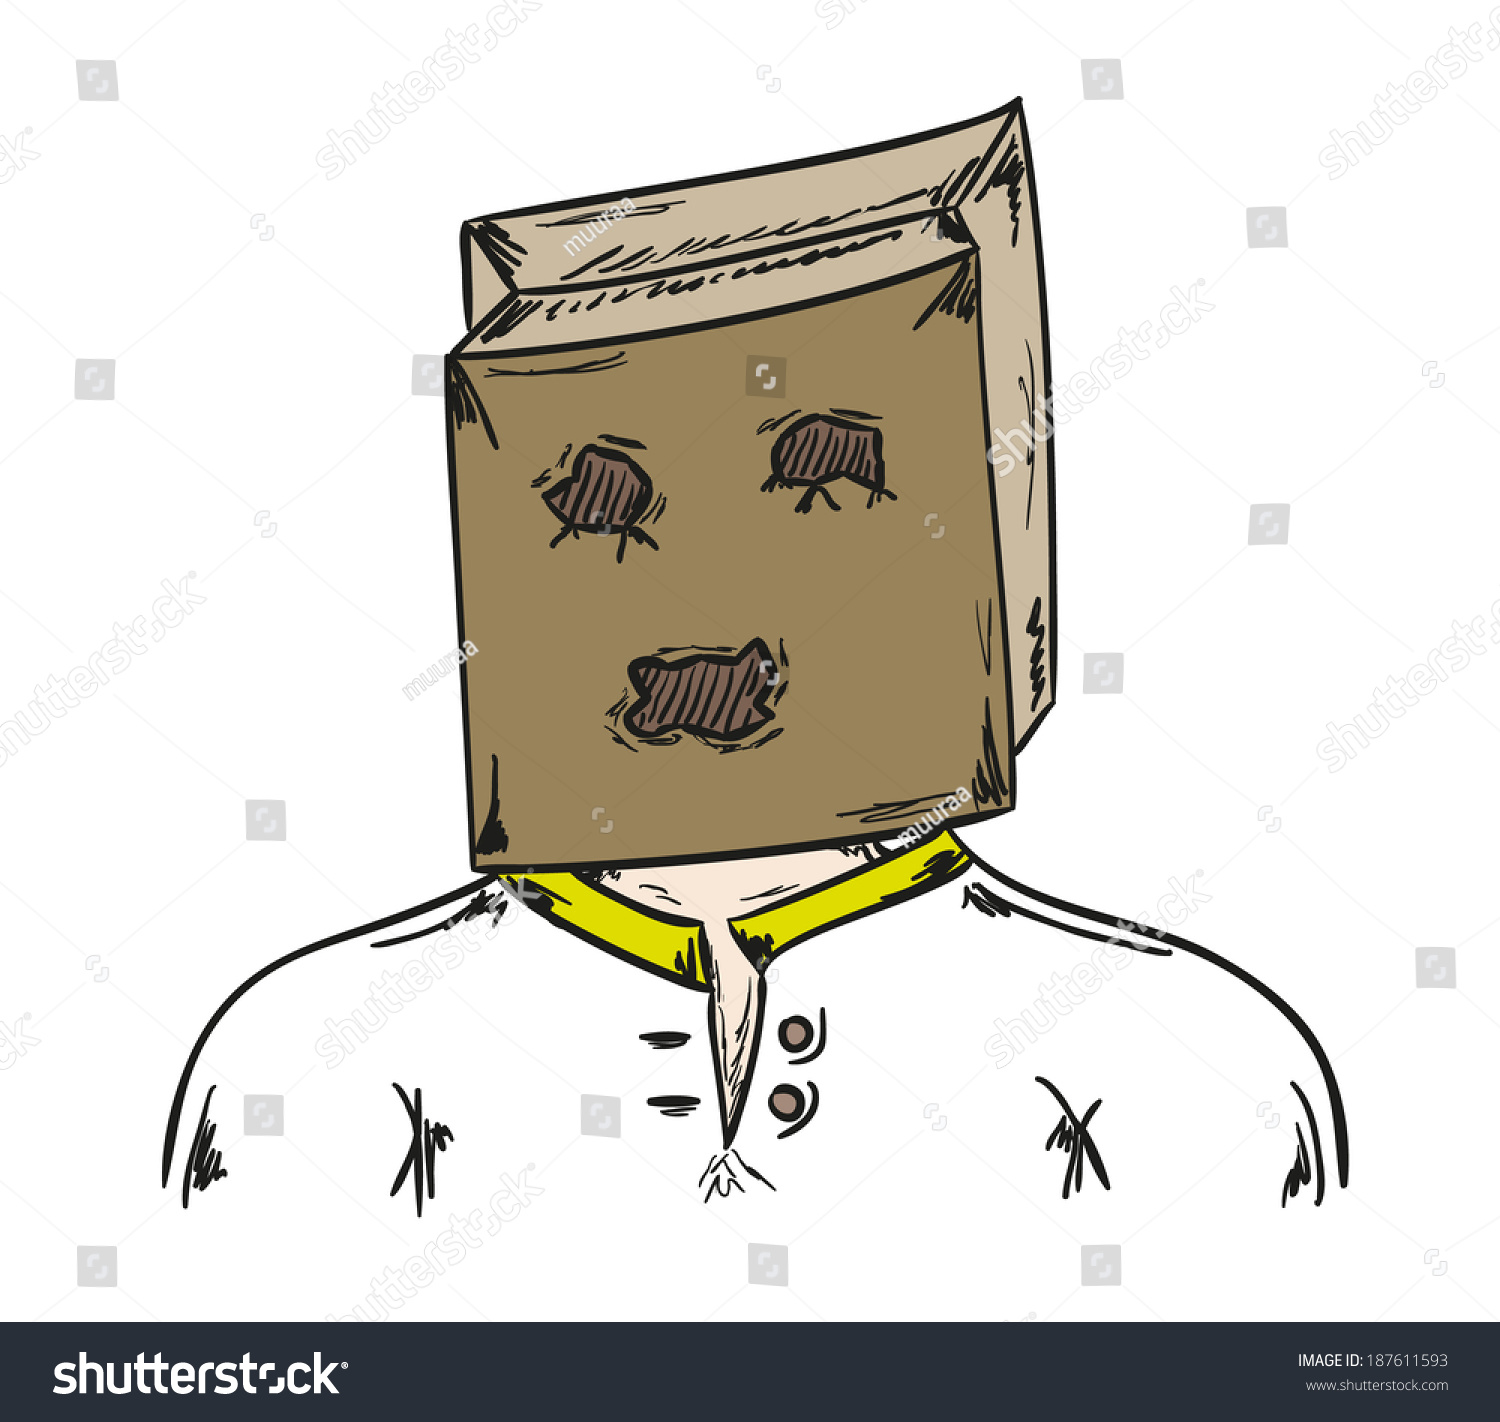 Paper bag sketch - Sketch Of The Man With Paper Bag On His Head